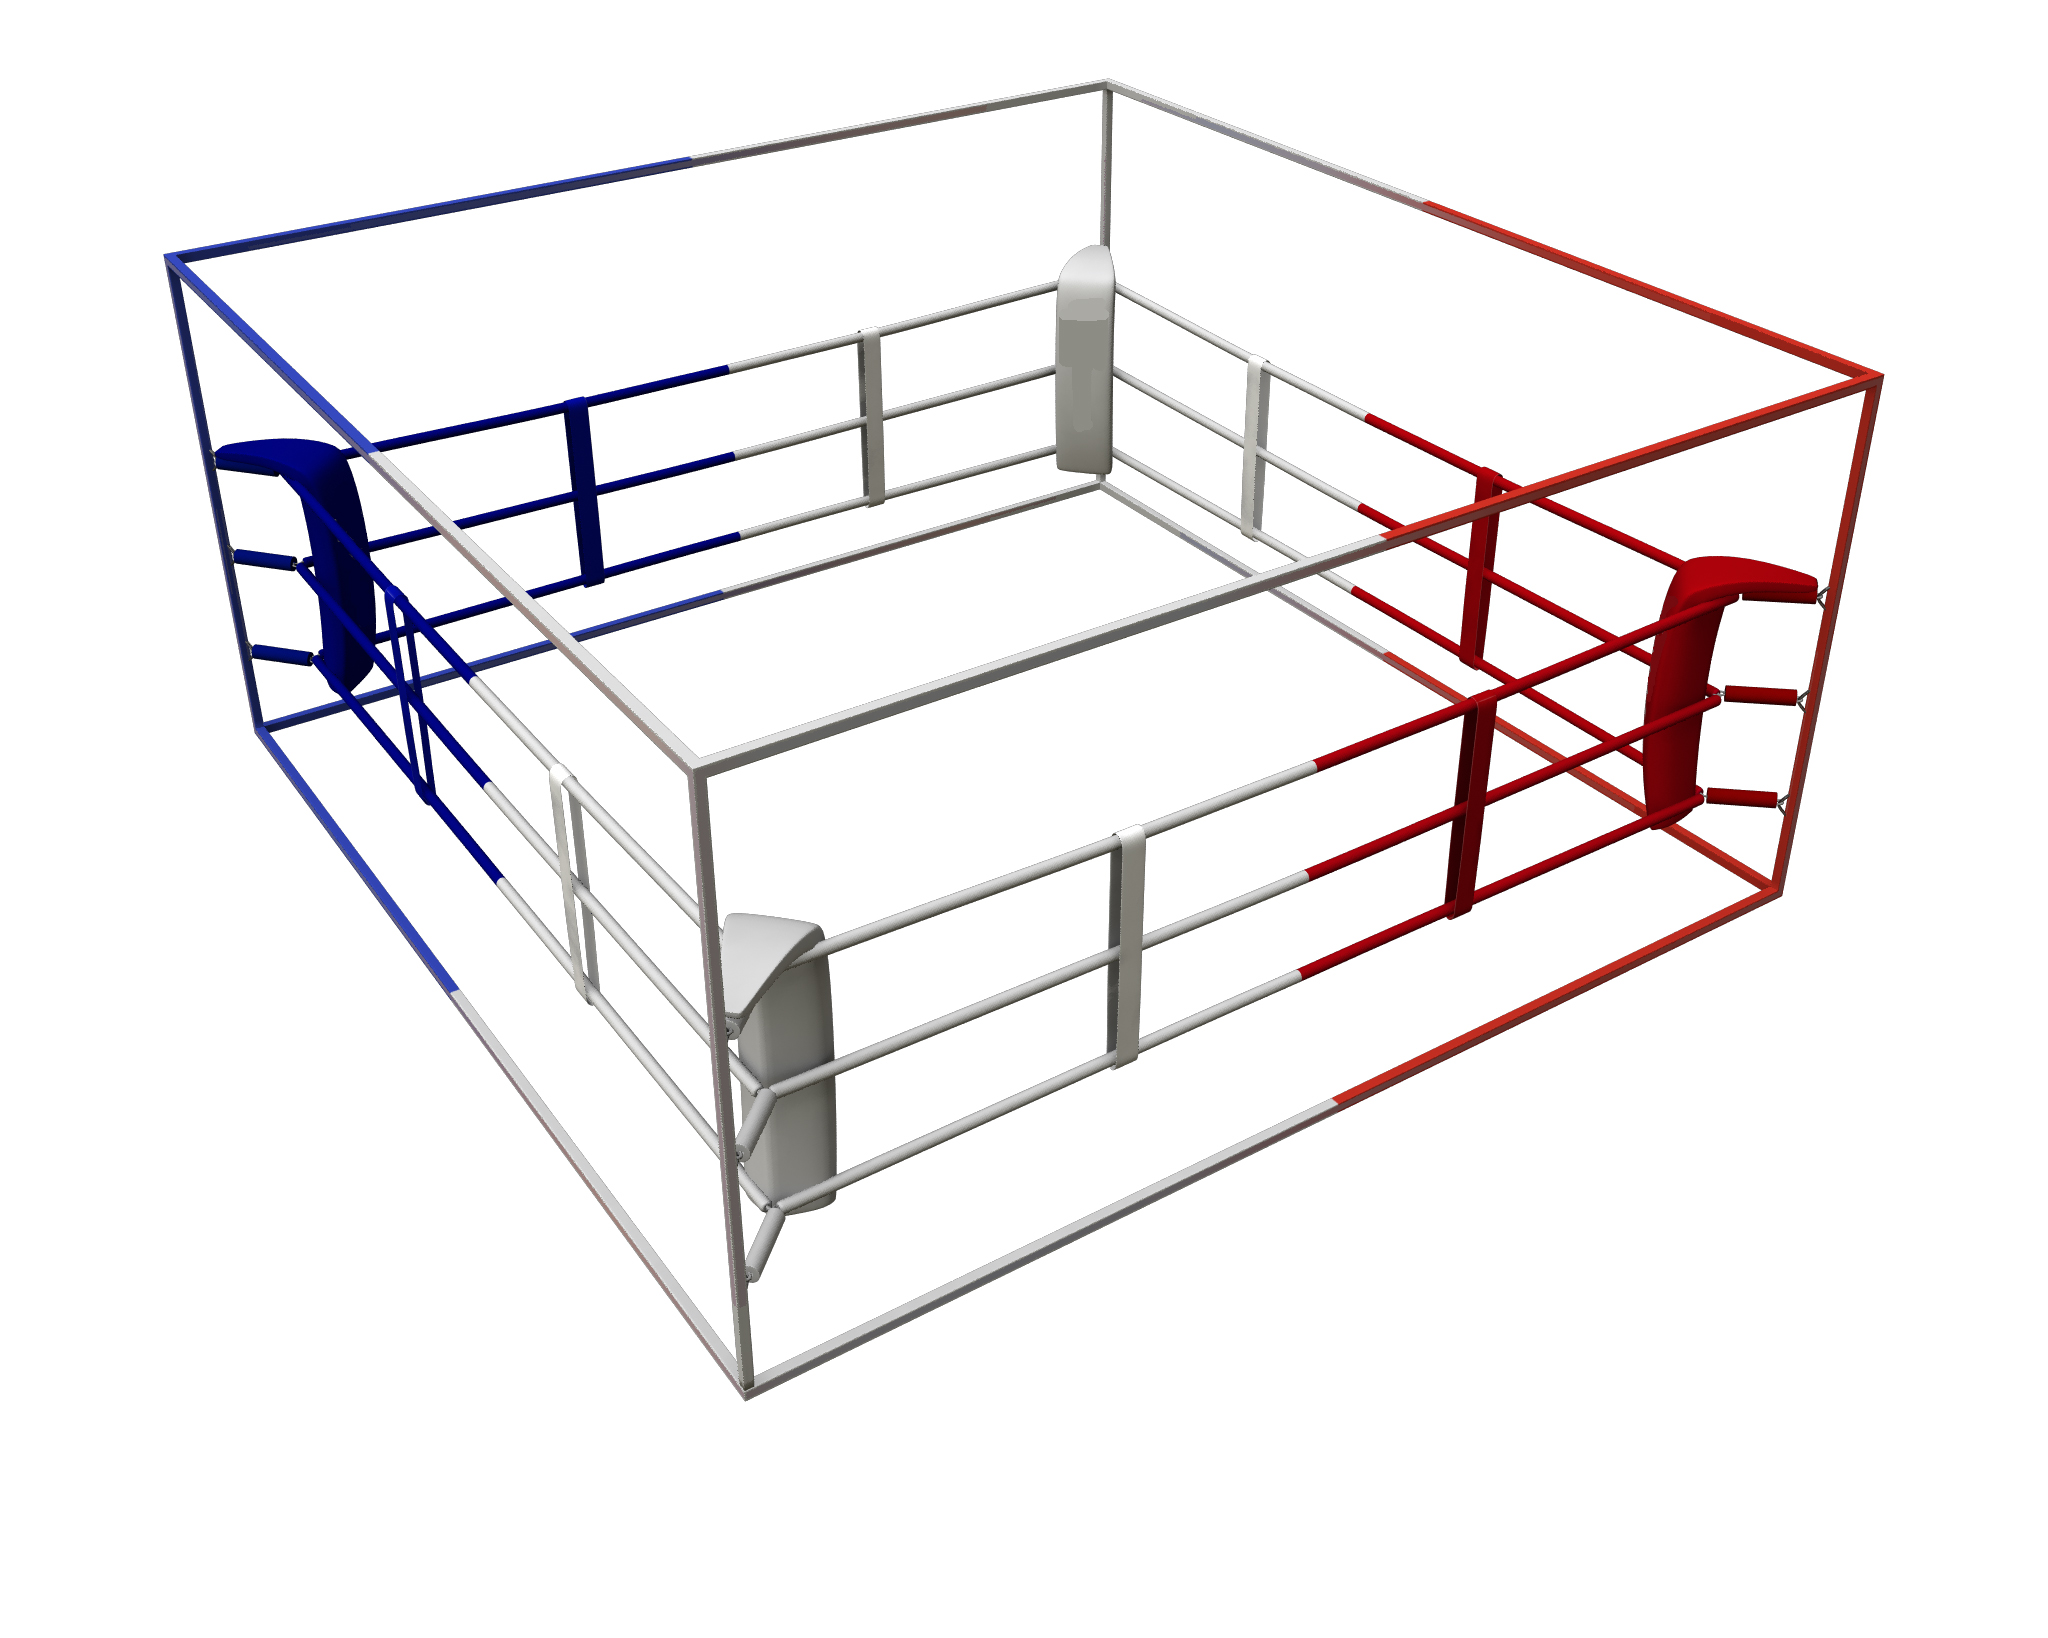 Ring de boxe démontable